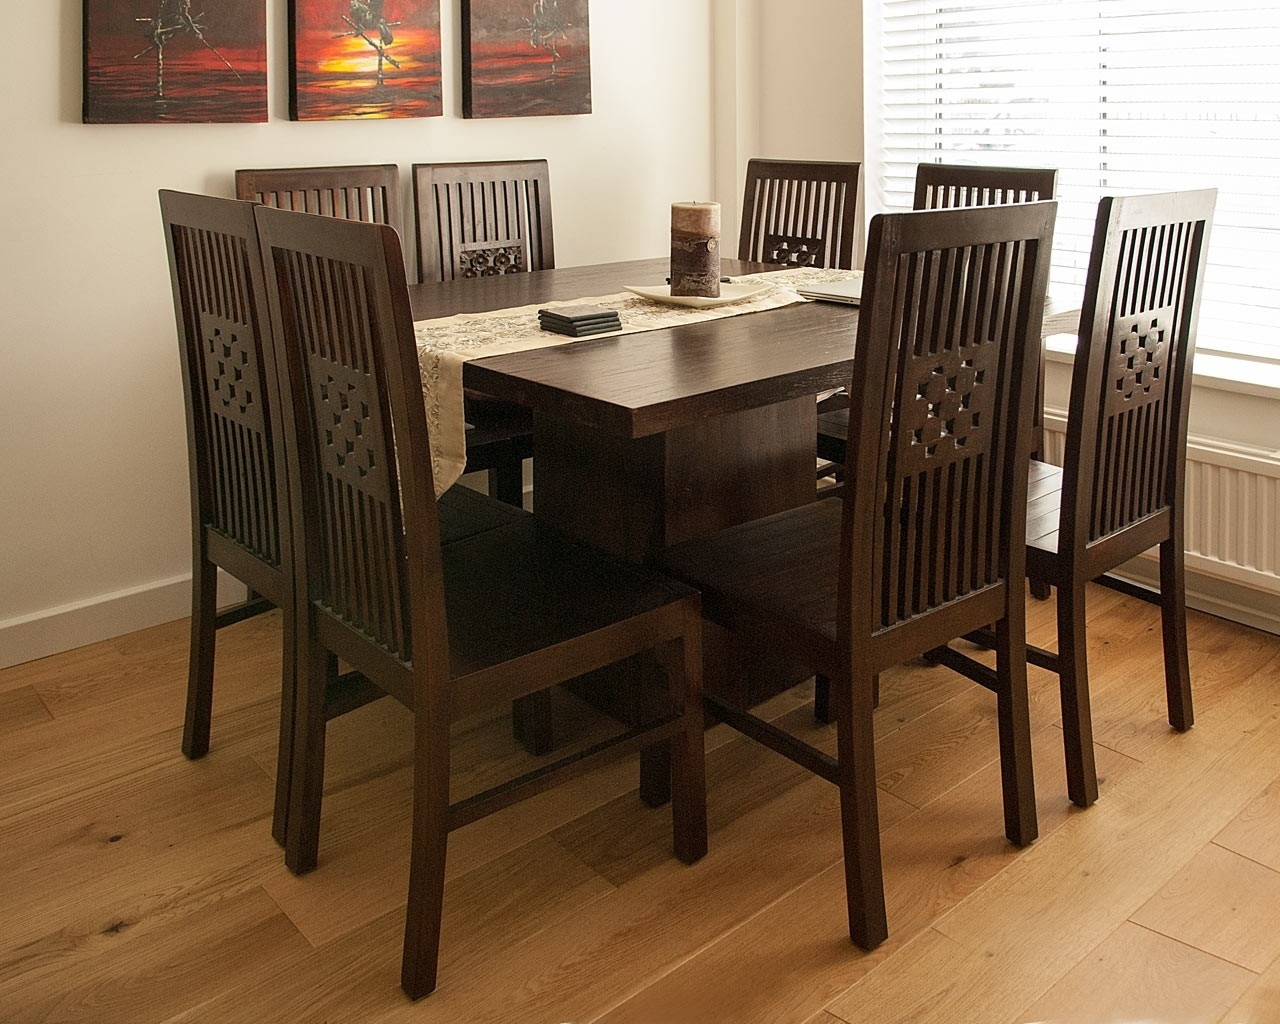 The Making Of The Dark Wood Dining Table – Home Decor Ideas Intended For Preferred Dark Wooden Dining Tables (View 23 of 25)